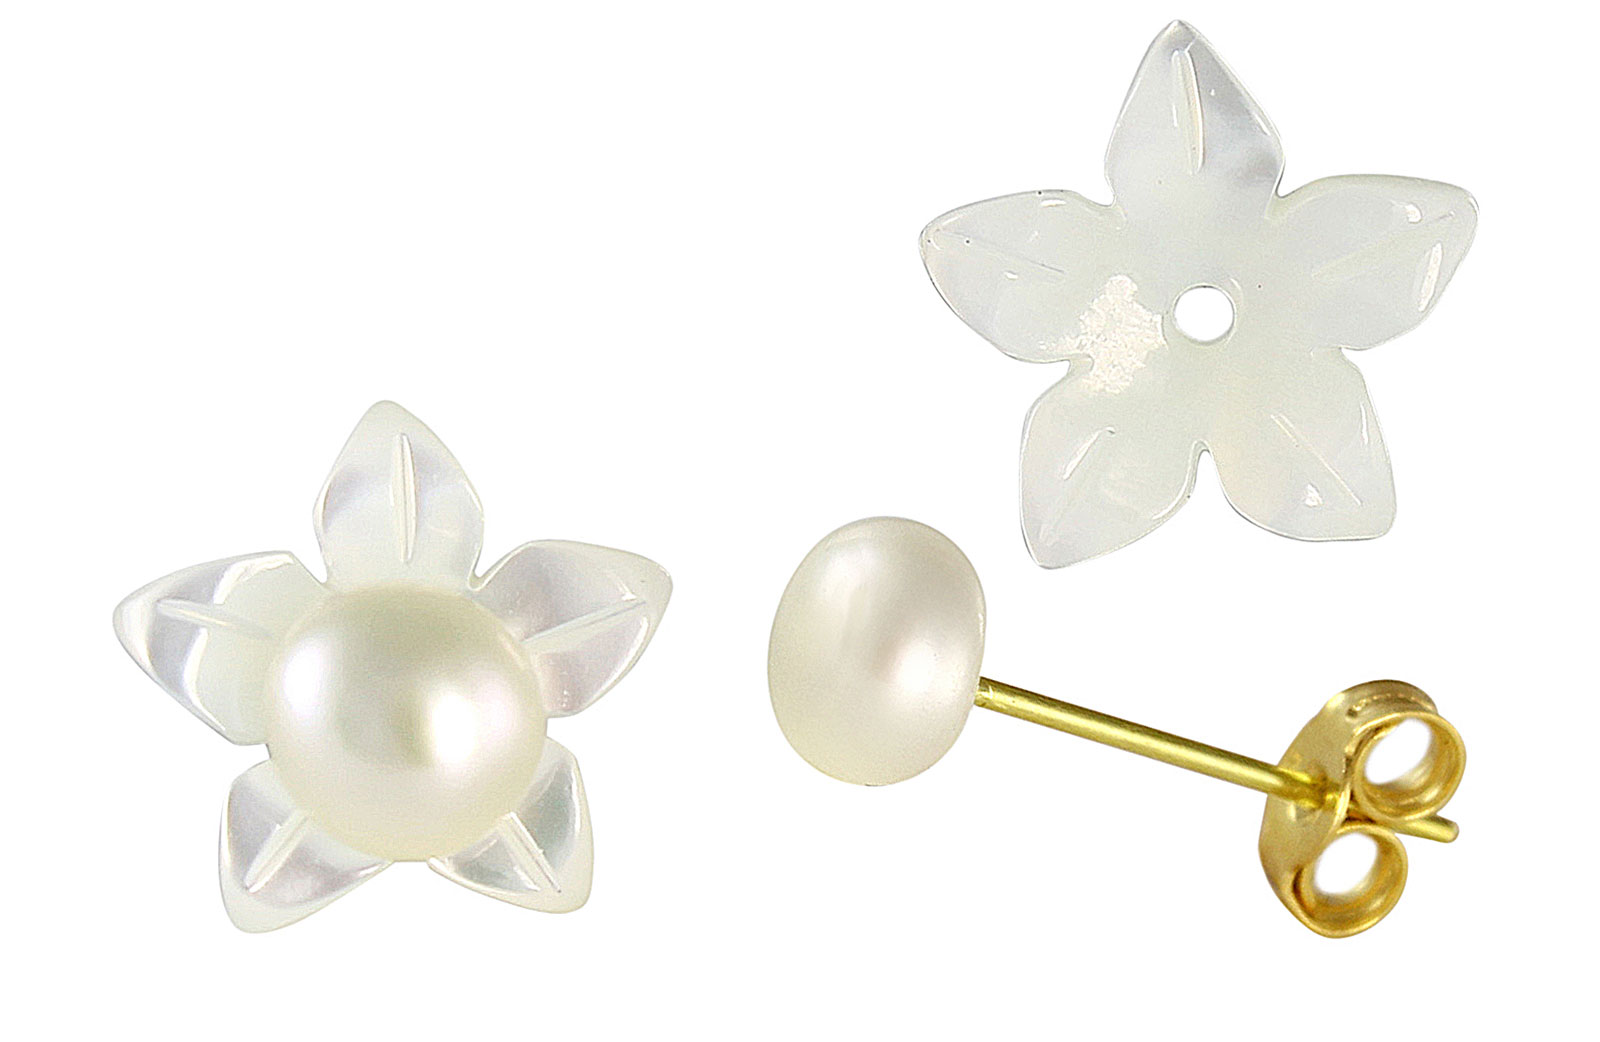 VP Jewels 18K  Yellow Gold,White Shell Flower  and 4-5MM Genuine White Pearls Earrings